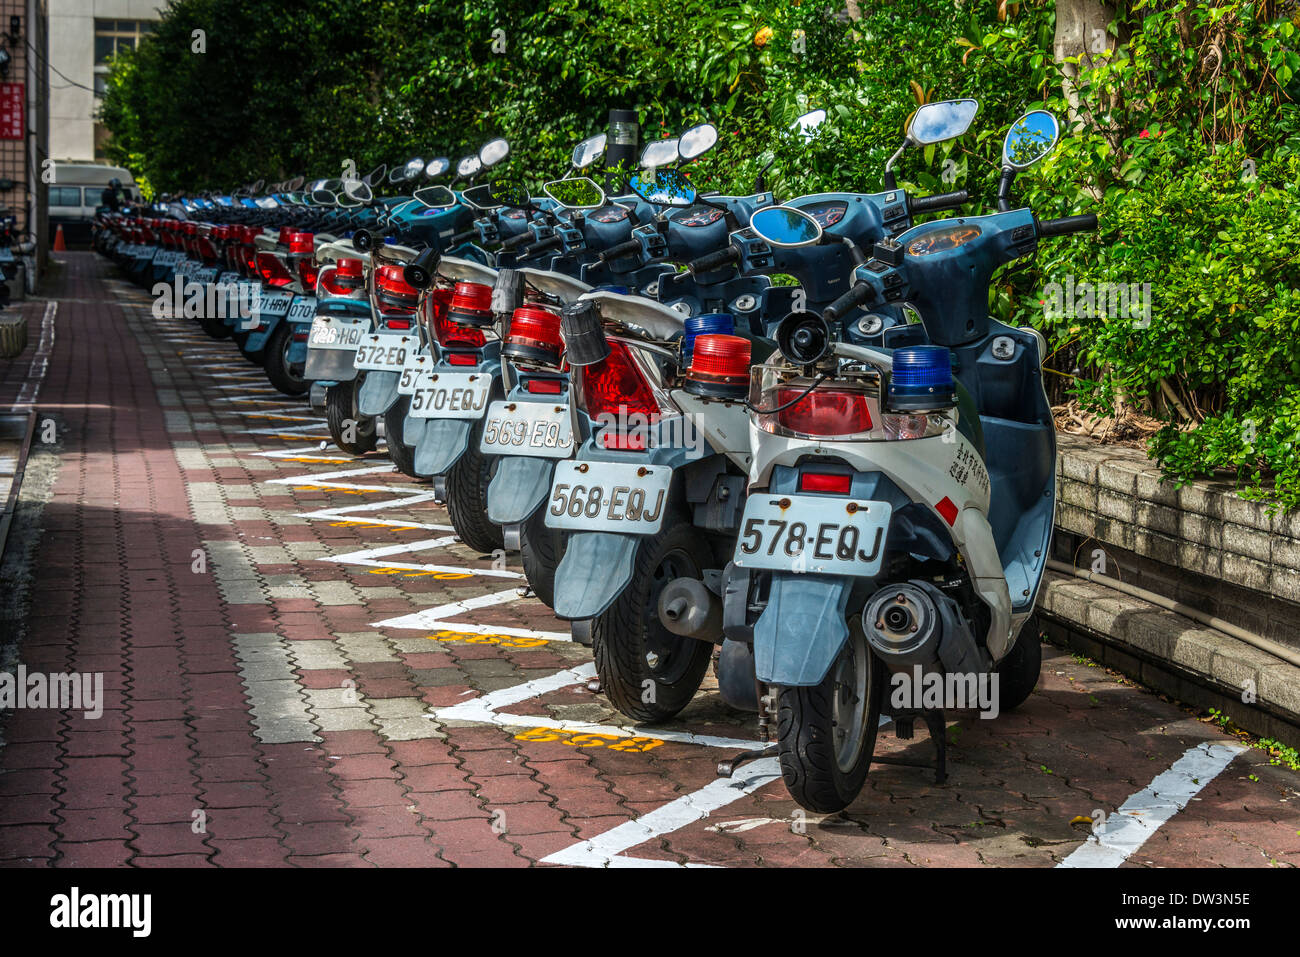 Row of Parked Police Motor Scooters, Taipei, Taiwan - Stock Image